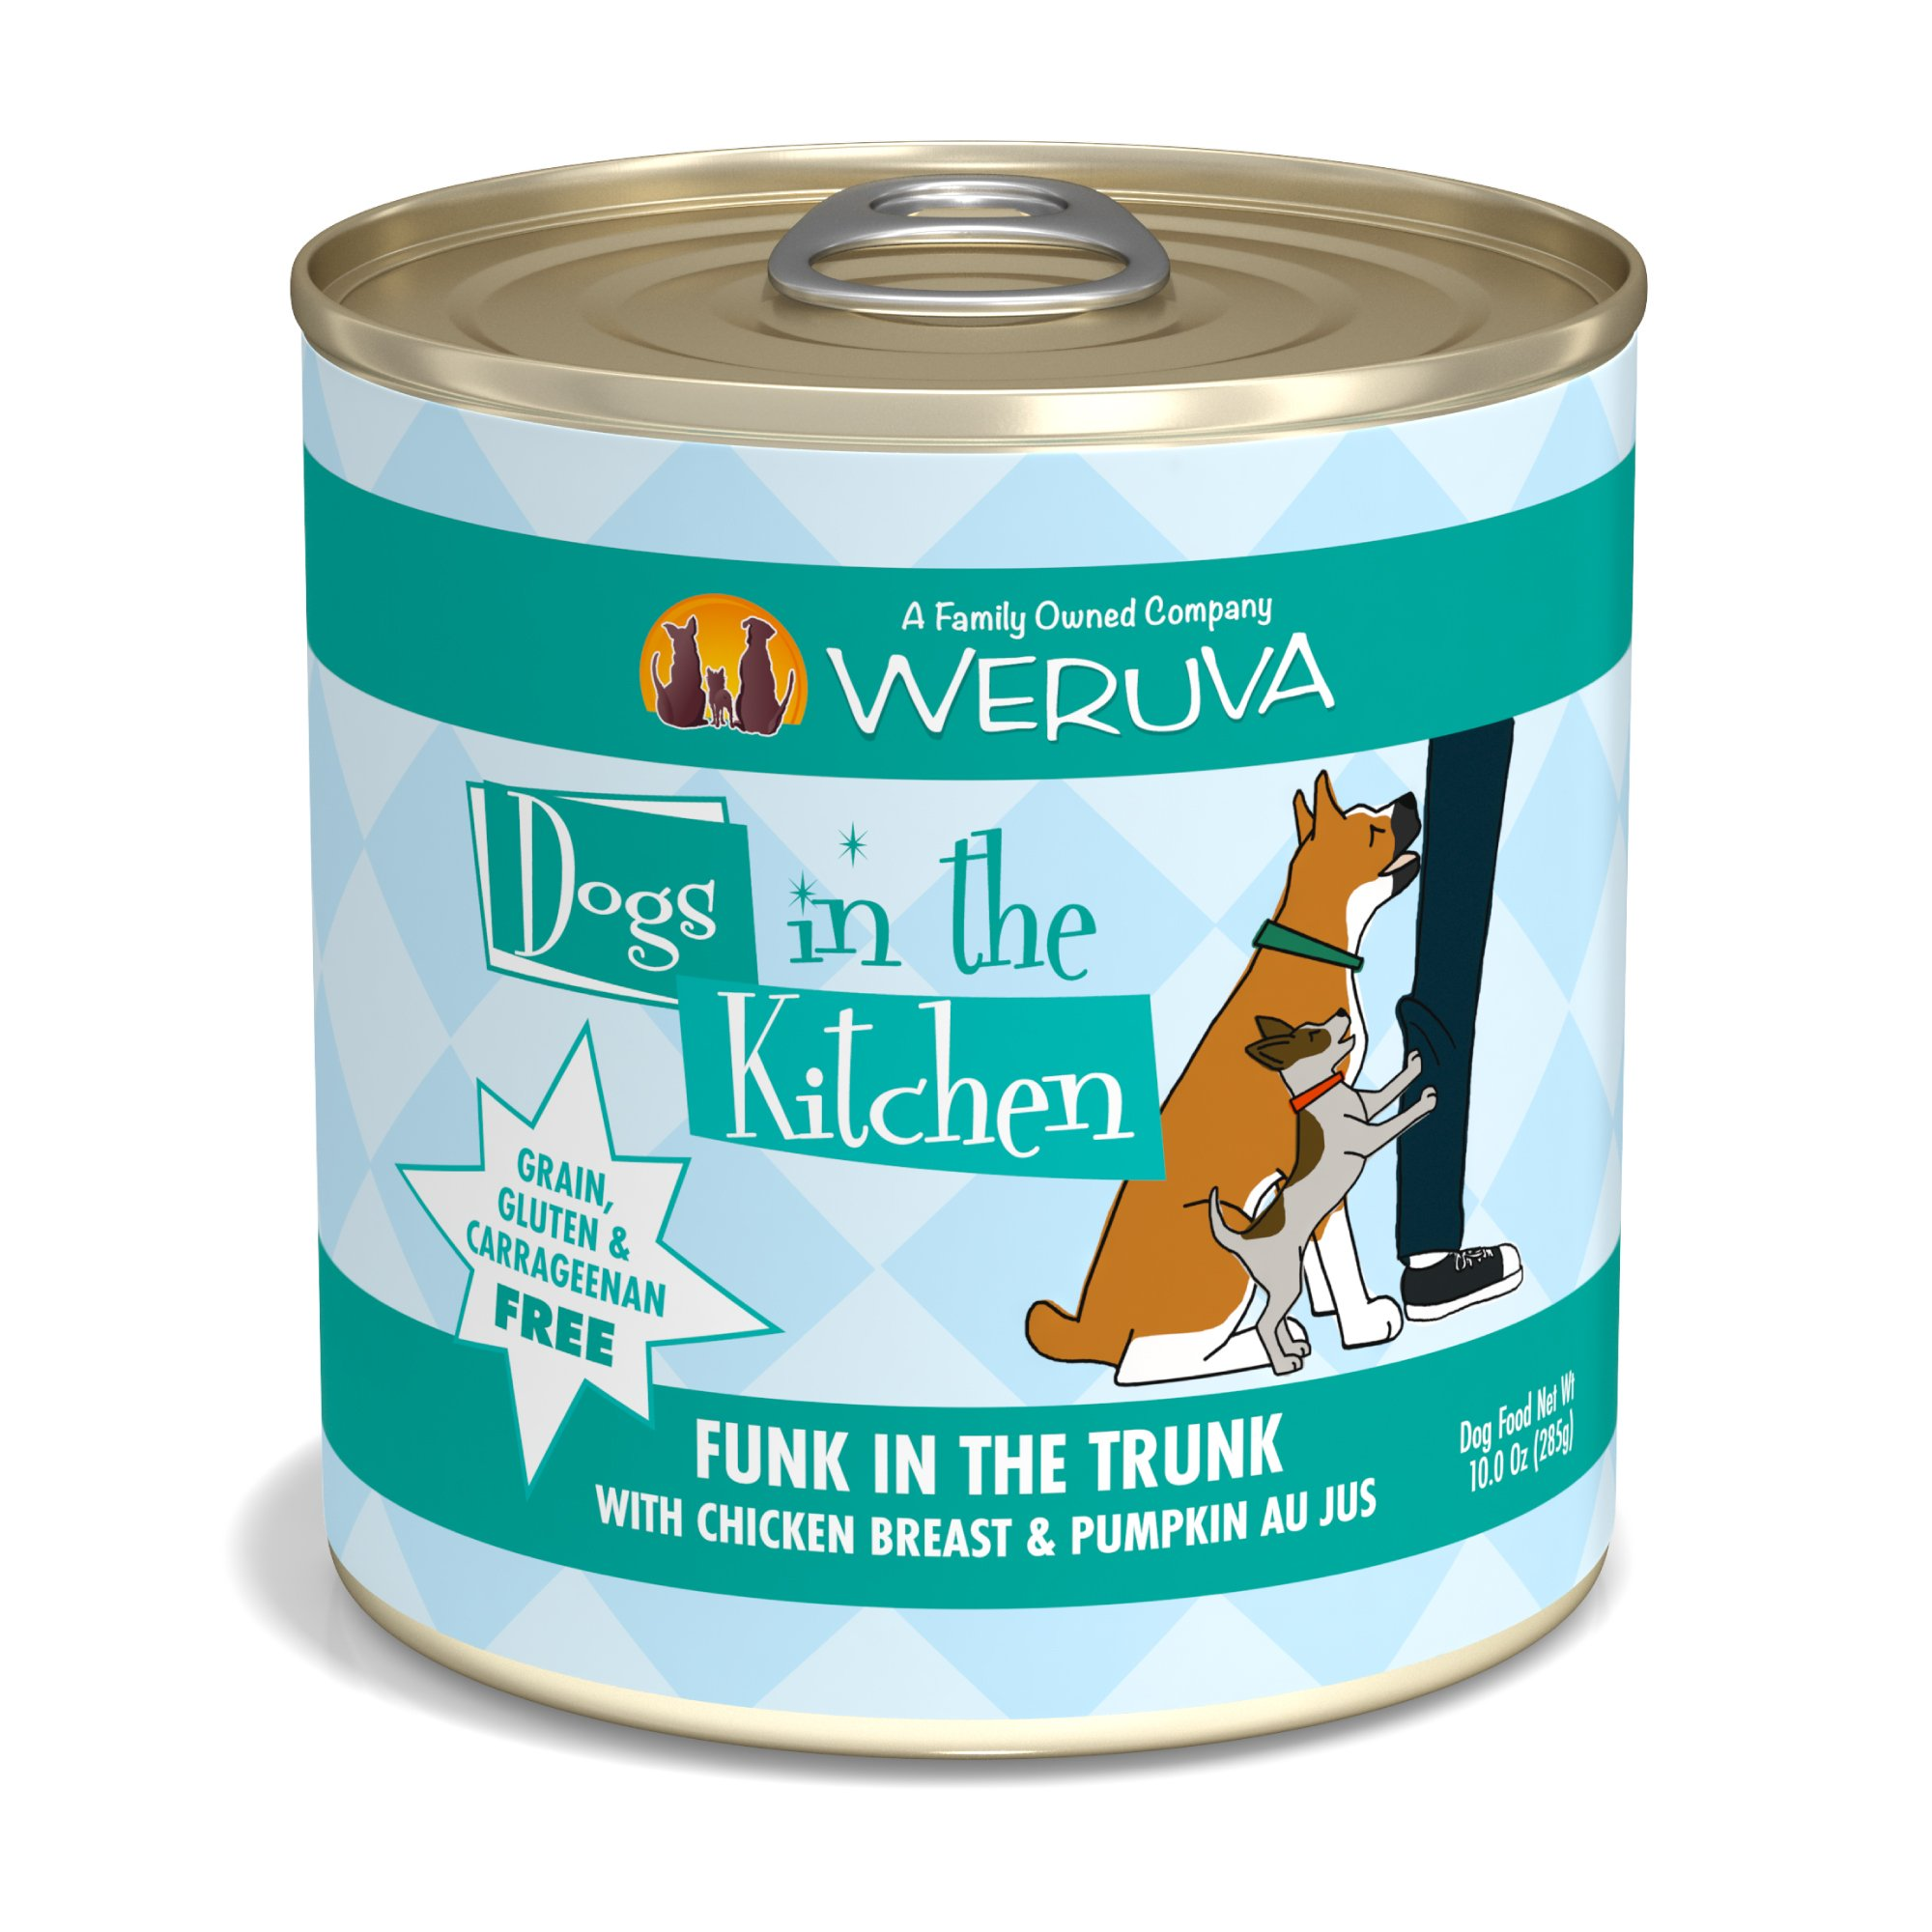 Dogs in the Kitchen Funk in the Trunk with Chicken Breast & Pumpkin Au Jus Wet Dog Food, 10oz., Case of 12, 12 X 10 OZ